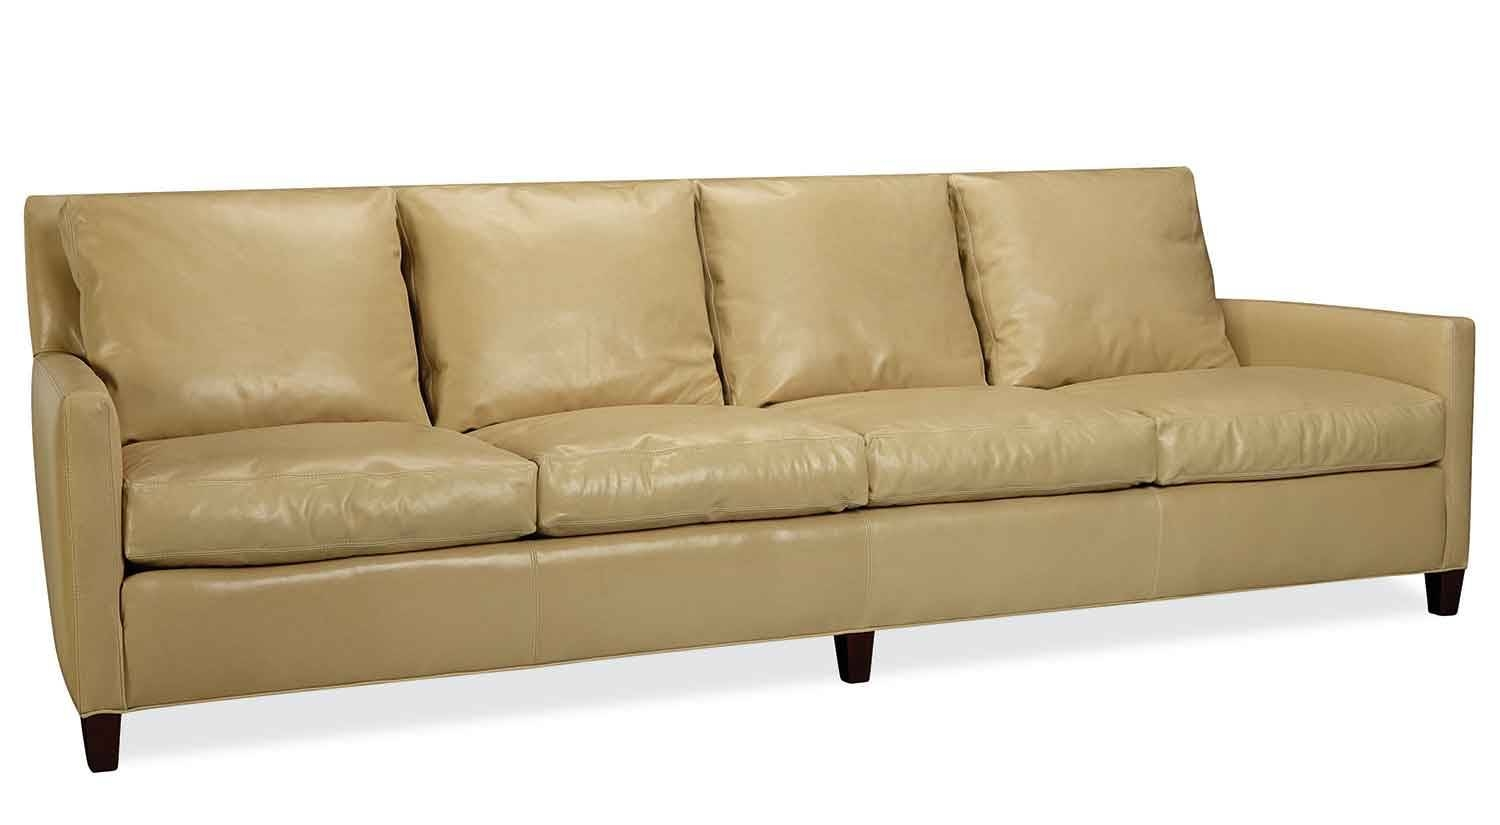 4 Seat Couch | Woodworking Plans Regarding 4 Seat Leather Sofas (View 2 of 30)